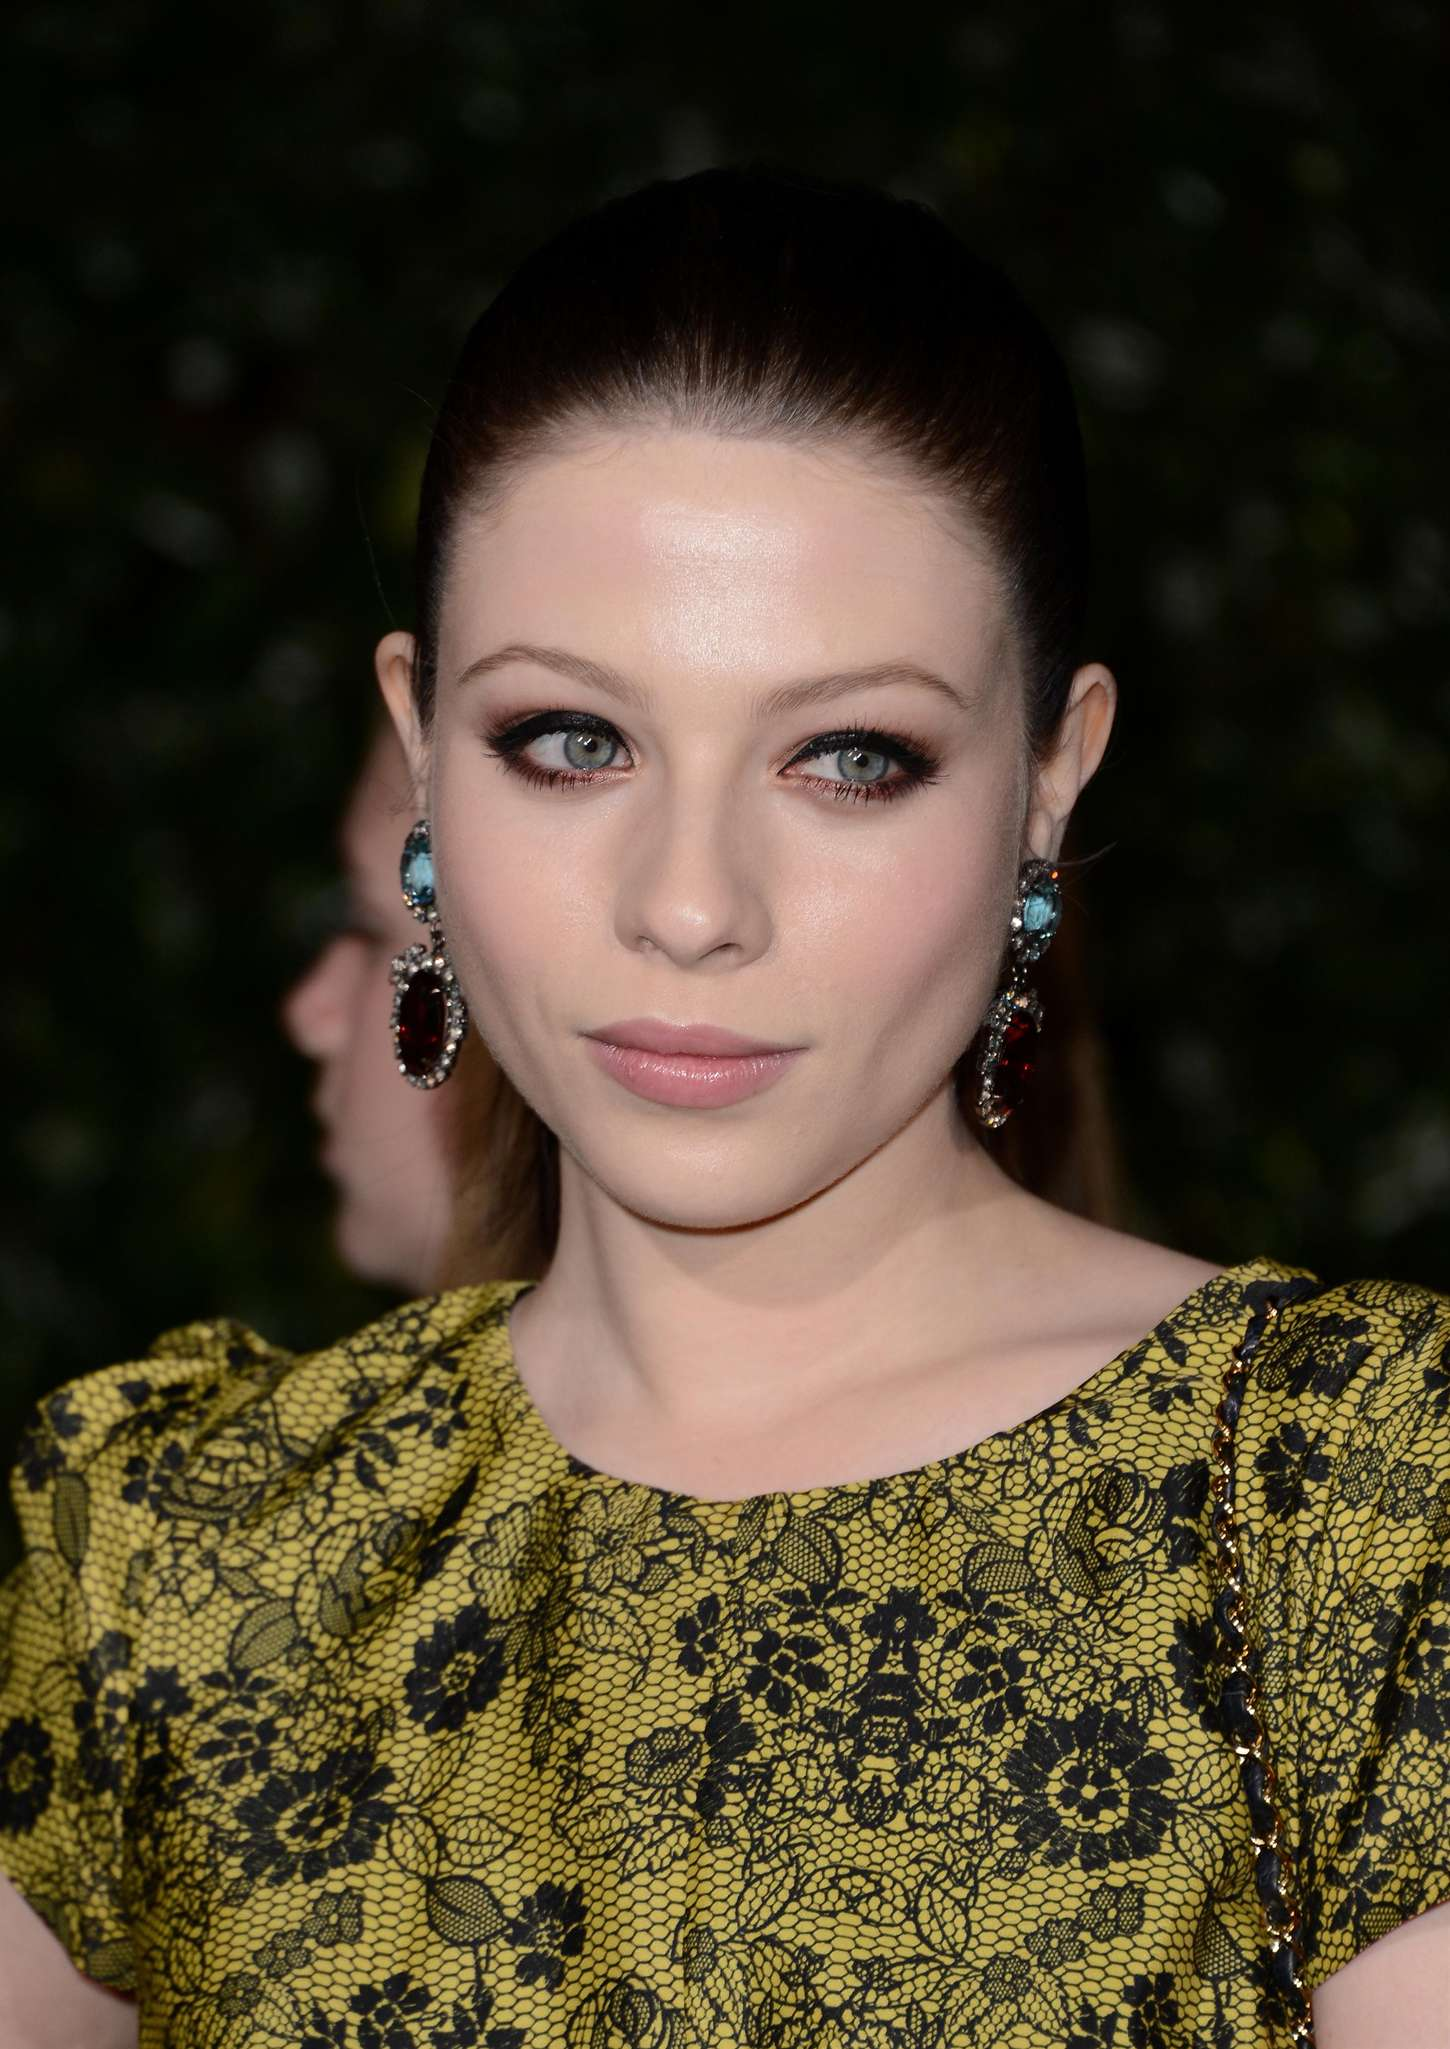 Michelle Trachtenberg Topshop Topman Los Angeles Opening Party